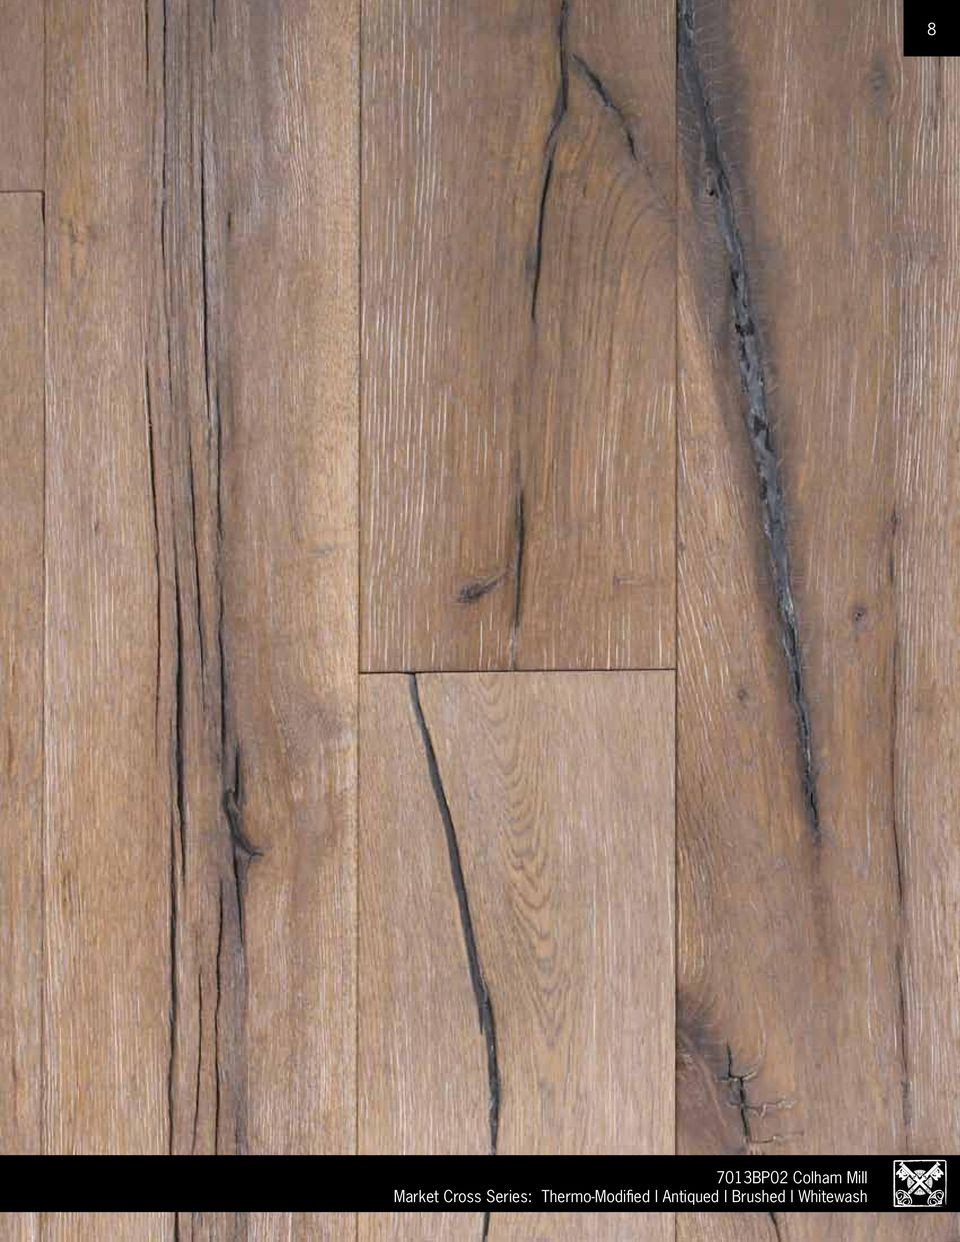 kahrs hardwood flooring distributors of make any home a castle pdf intended for thermo modified